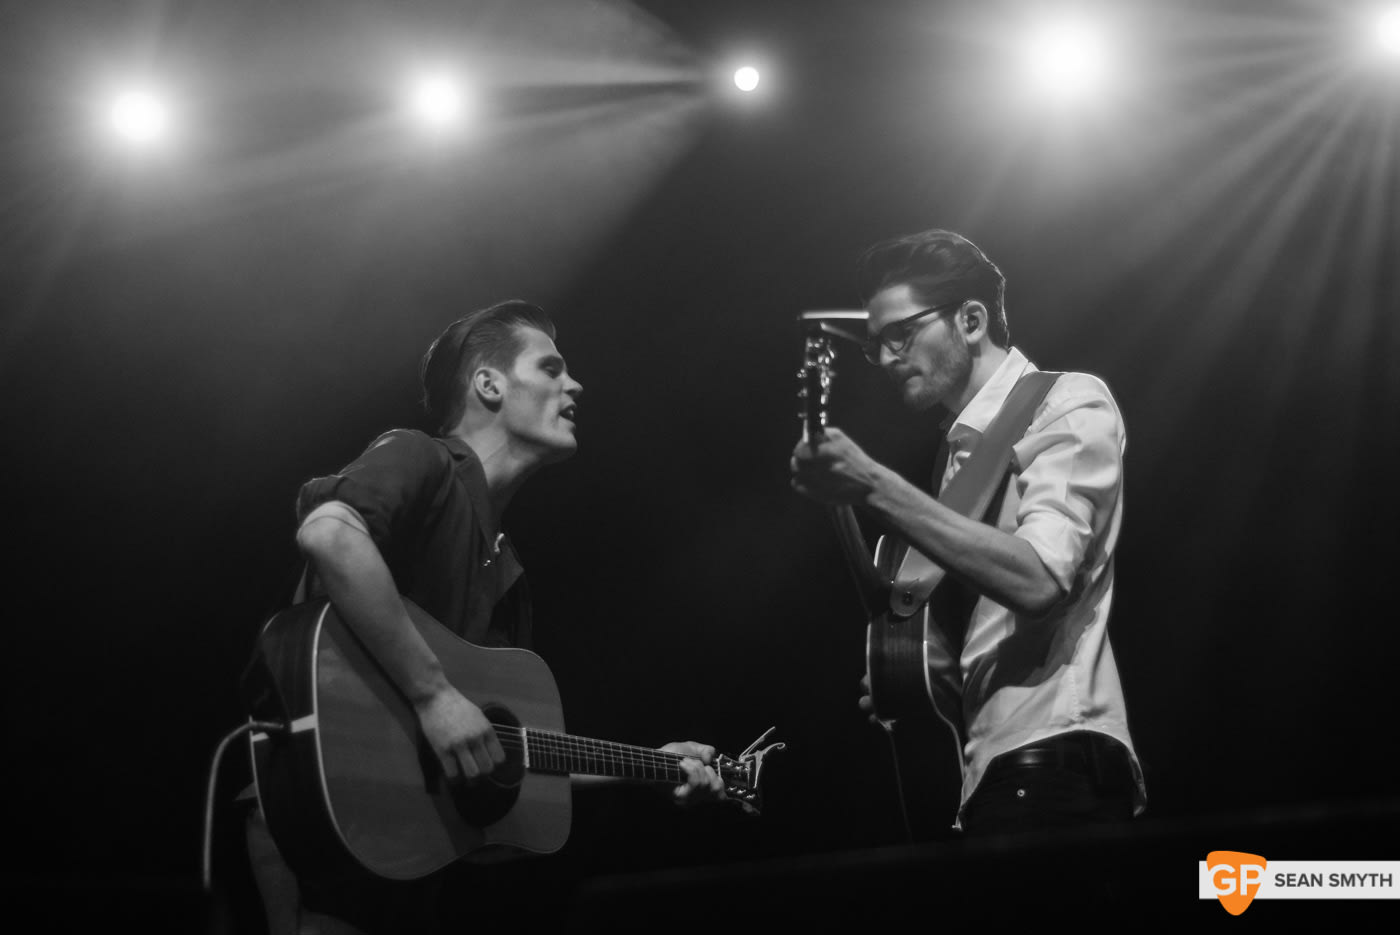 hudson-taylor-at-the-olympia-theatre-26-2-15-by-sean-smyth-7-of-26_16756764105_o